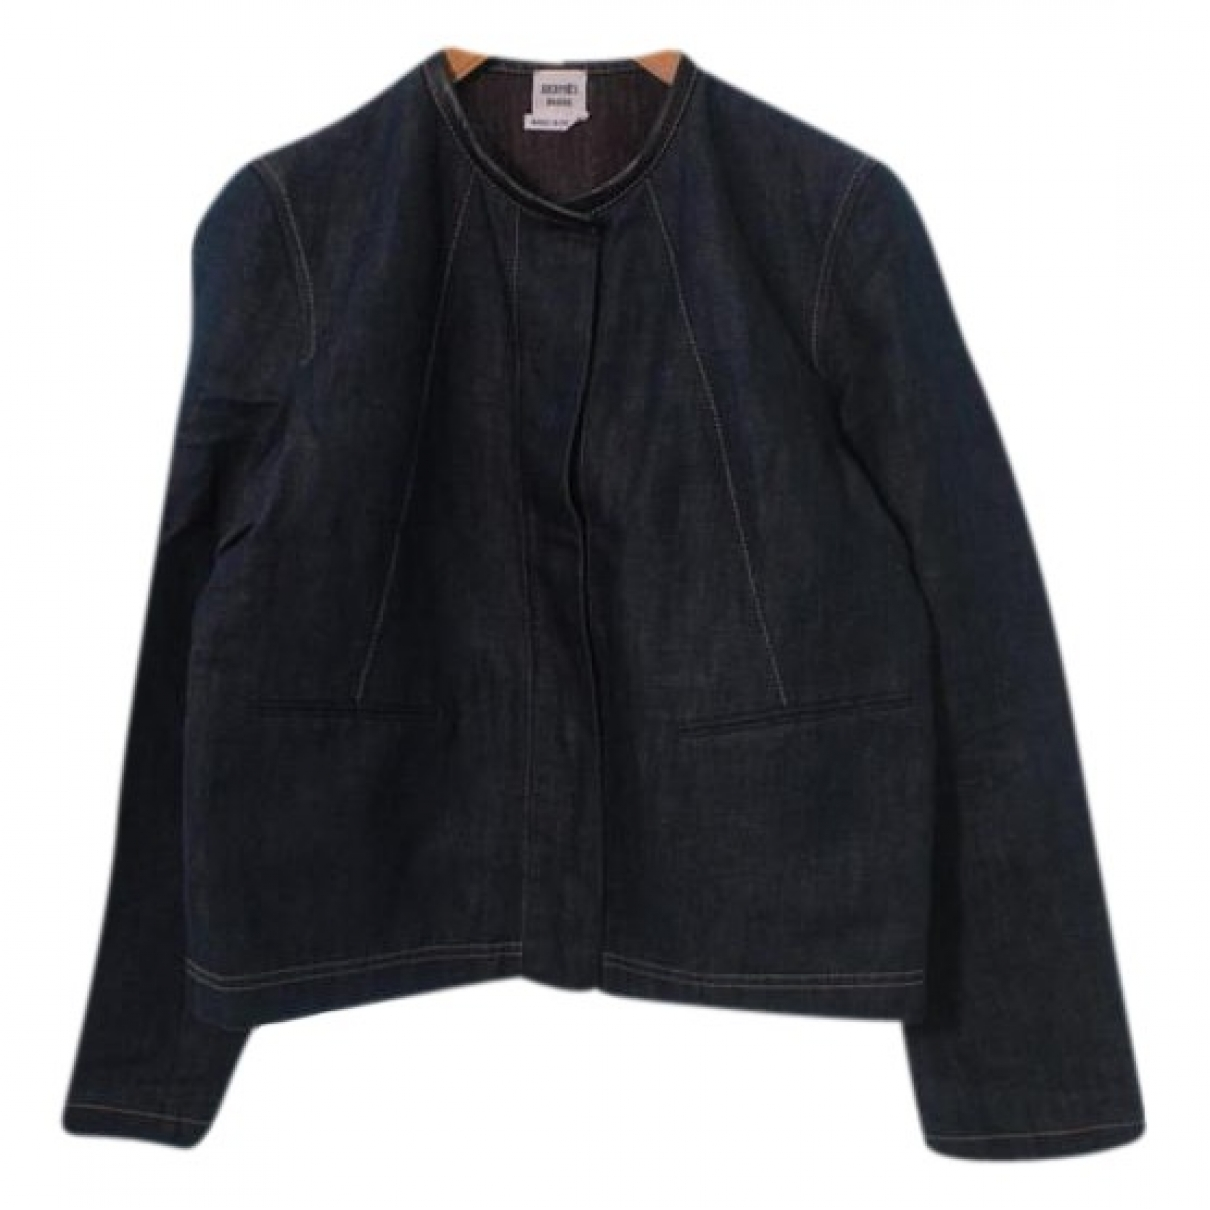 Hermès \N Blue Cotton jacket for Women 36 FR